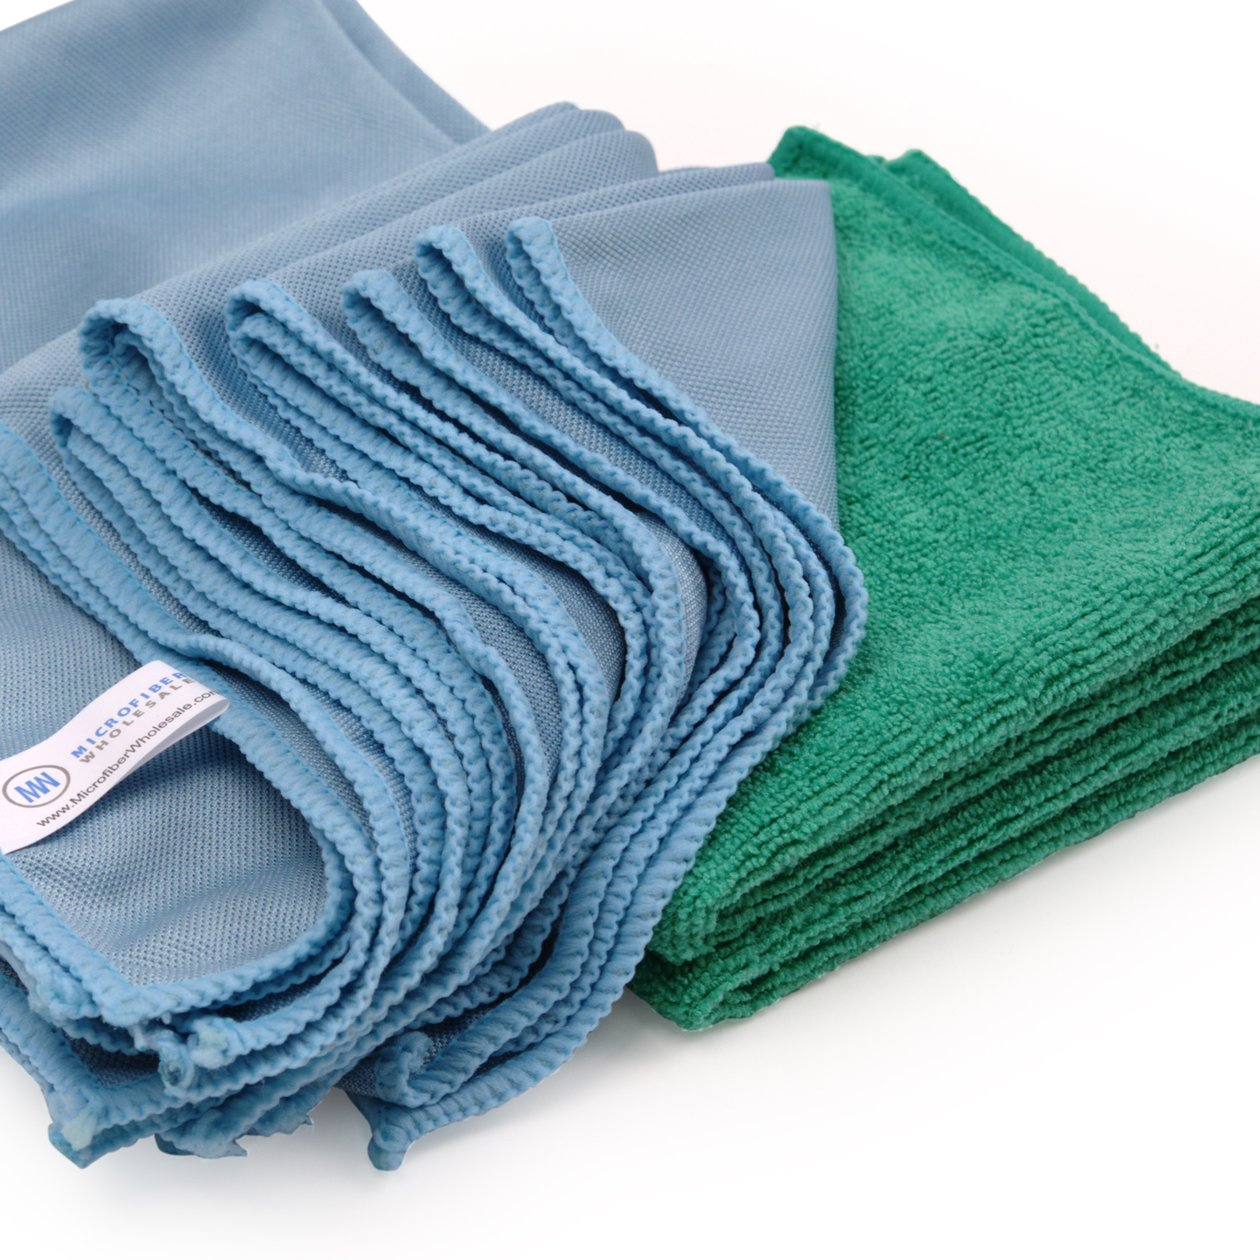 MICROfiber glass towel system